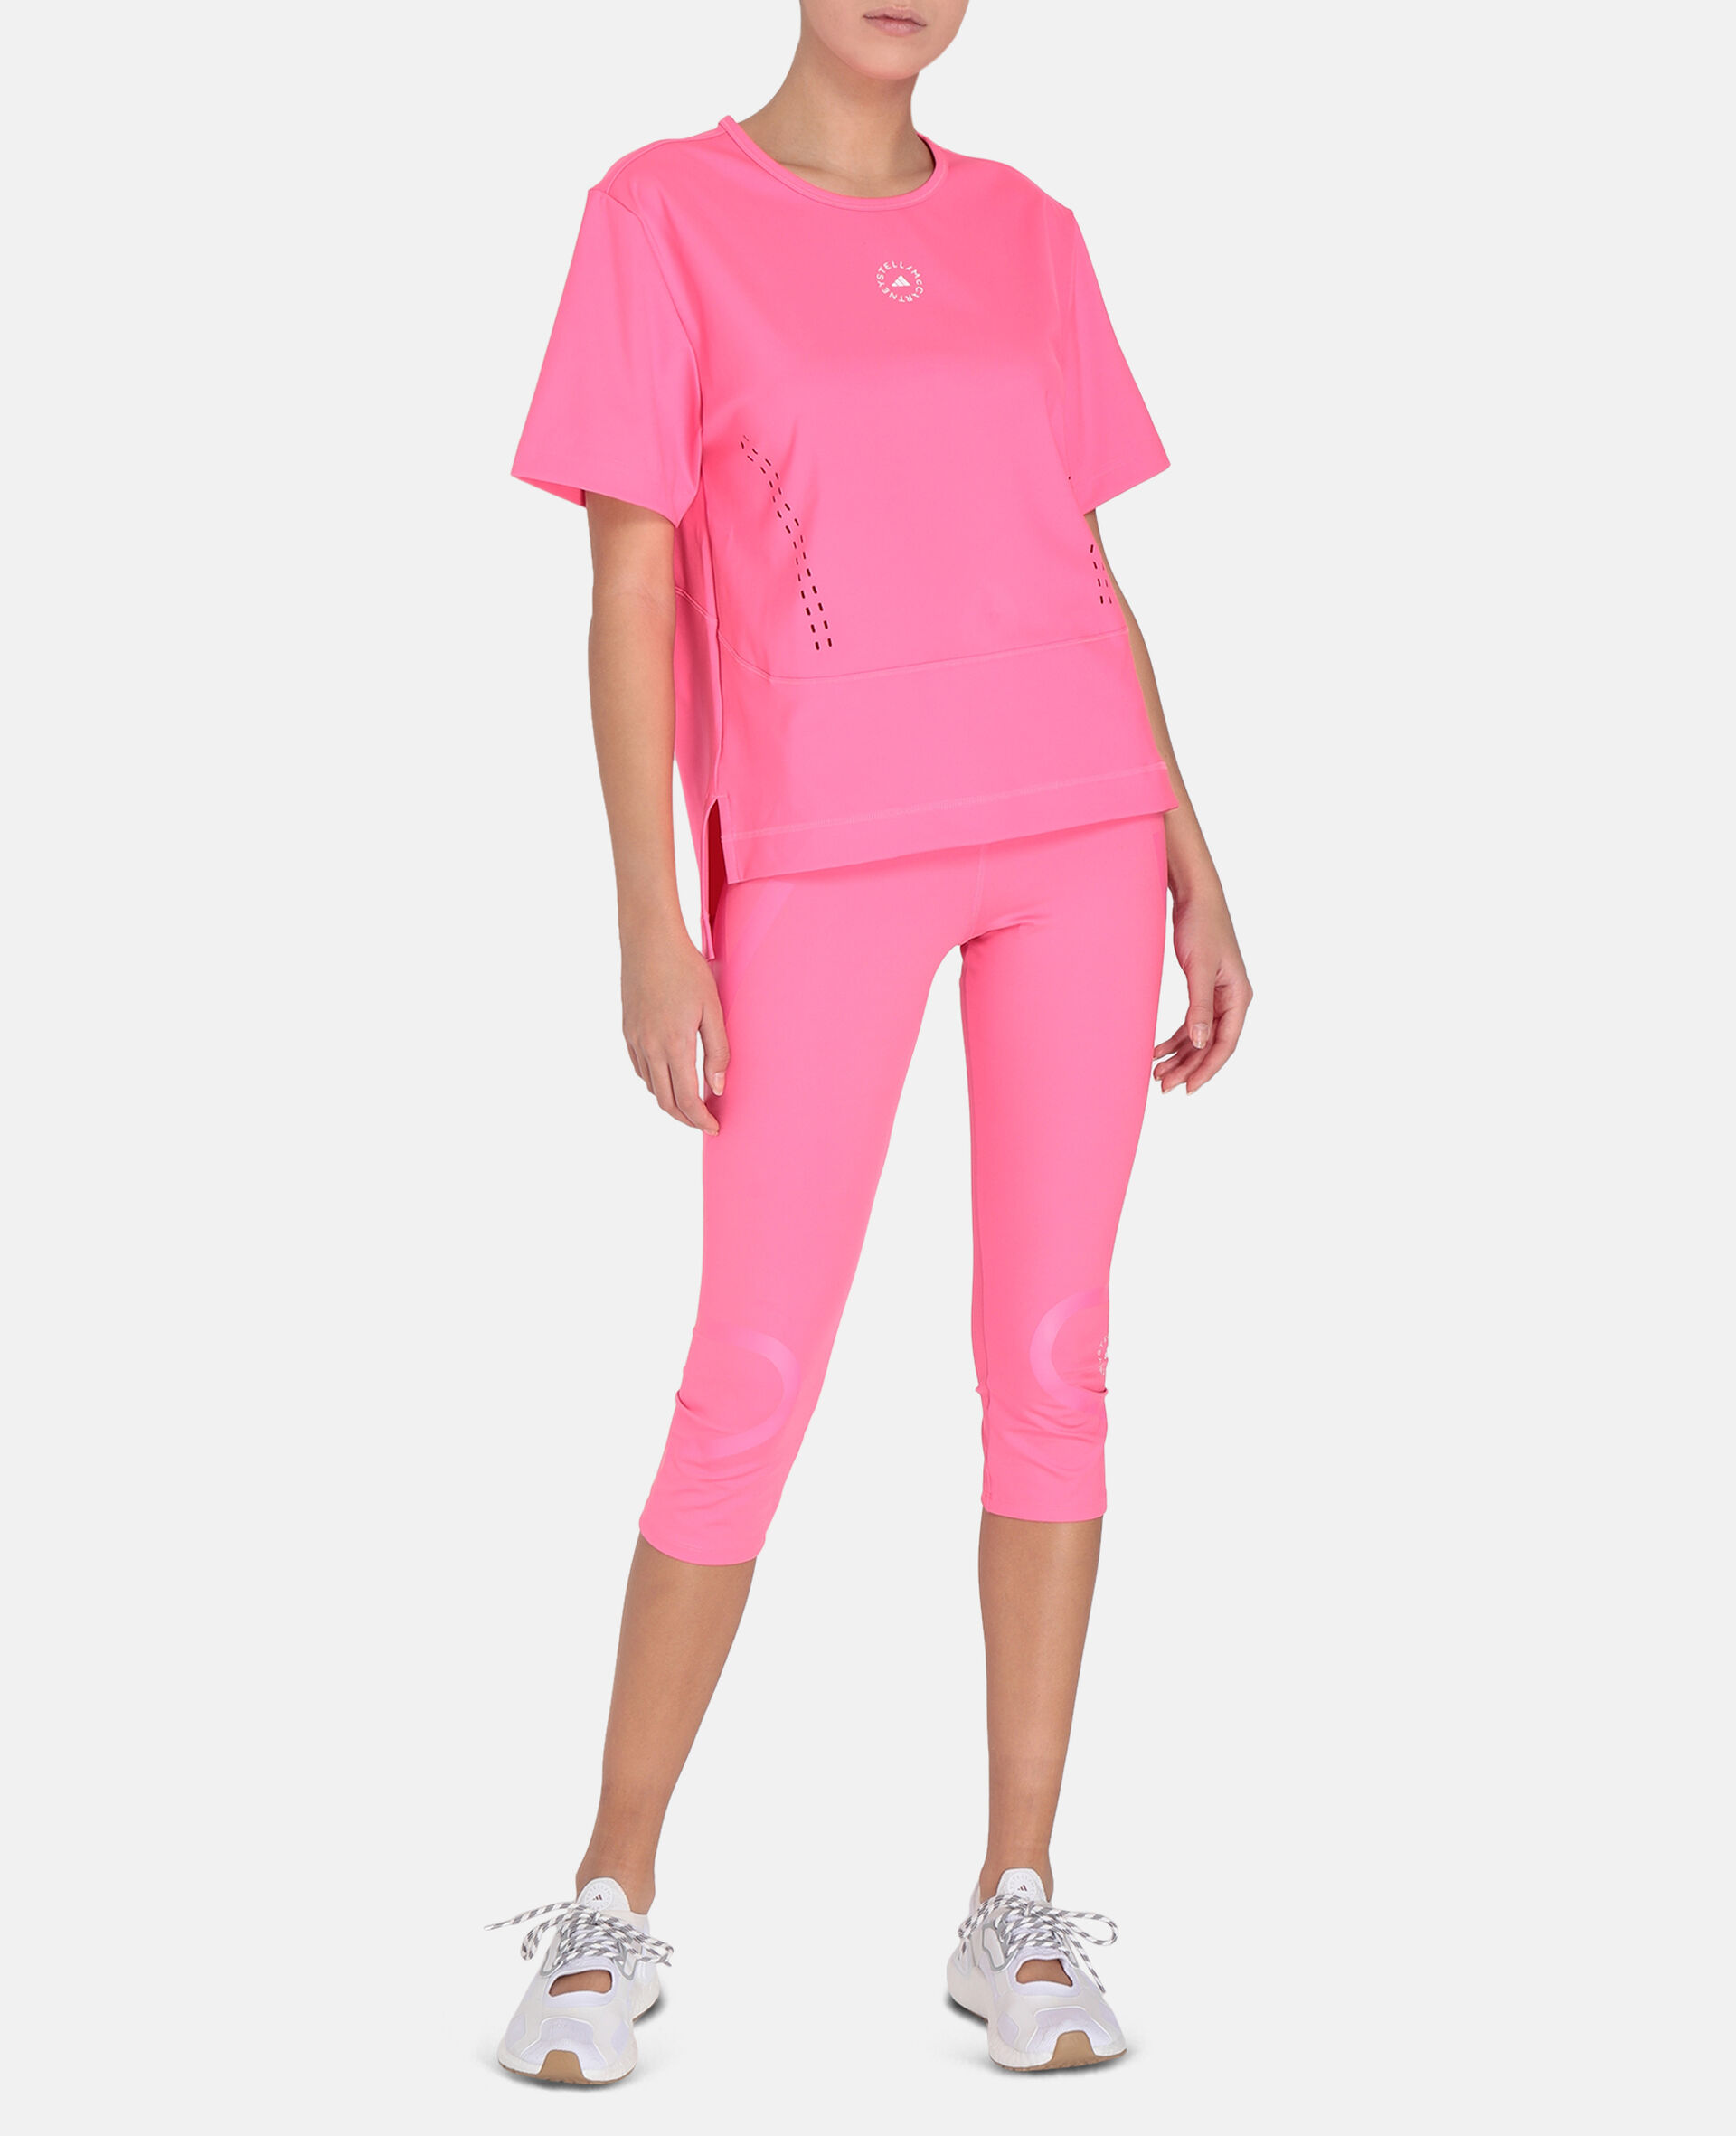 TruePace 3/4 Running Tights-Pink-large image number 1